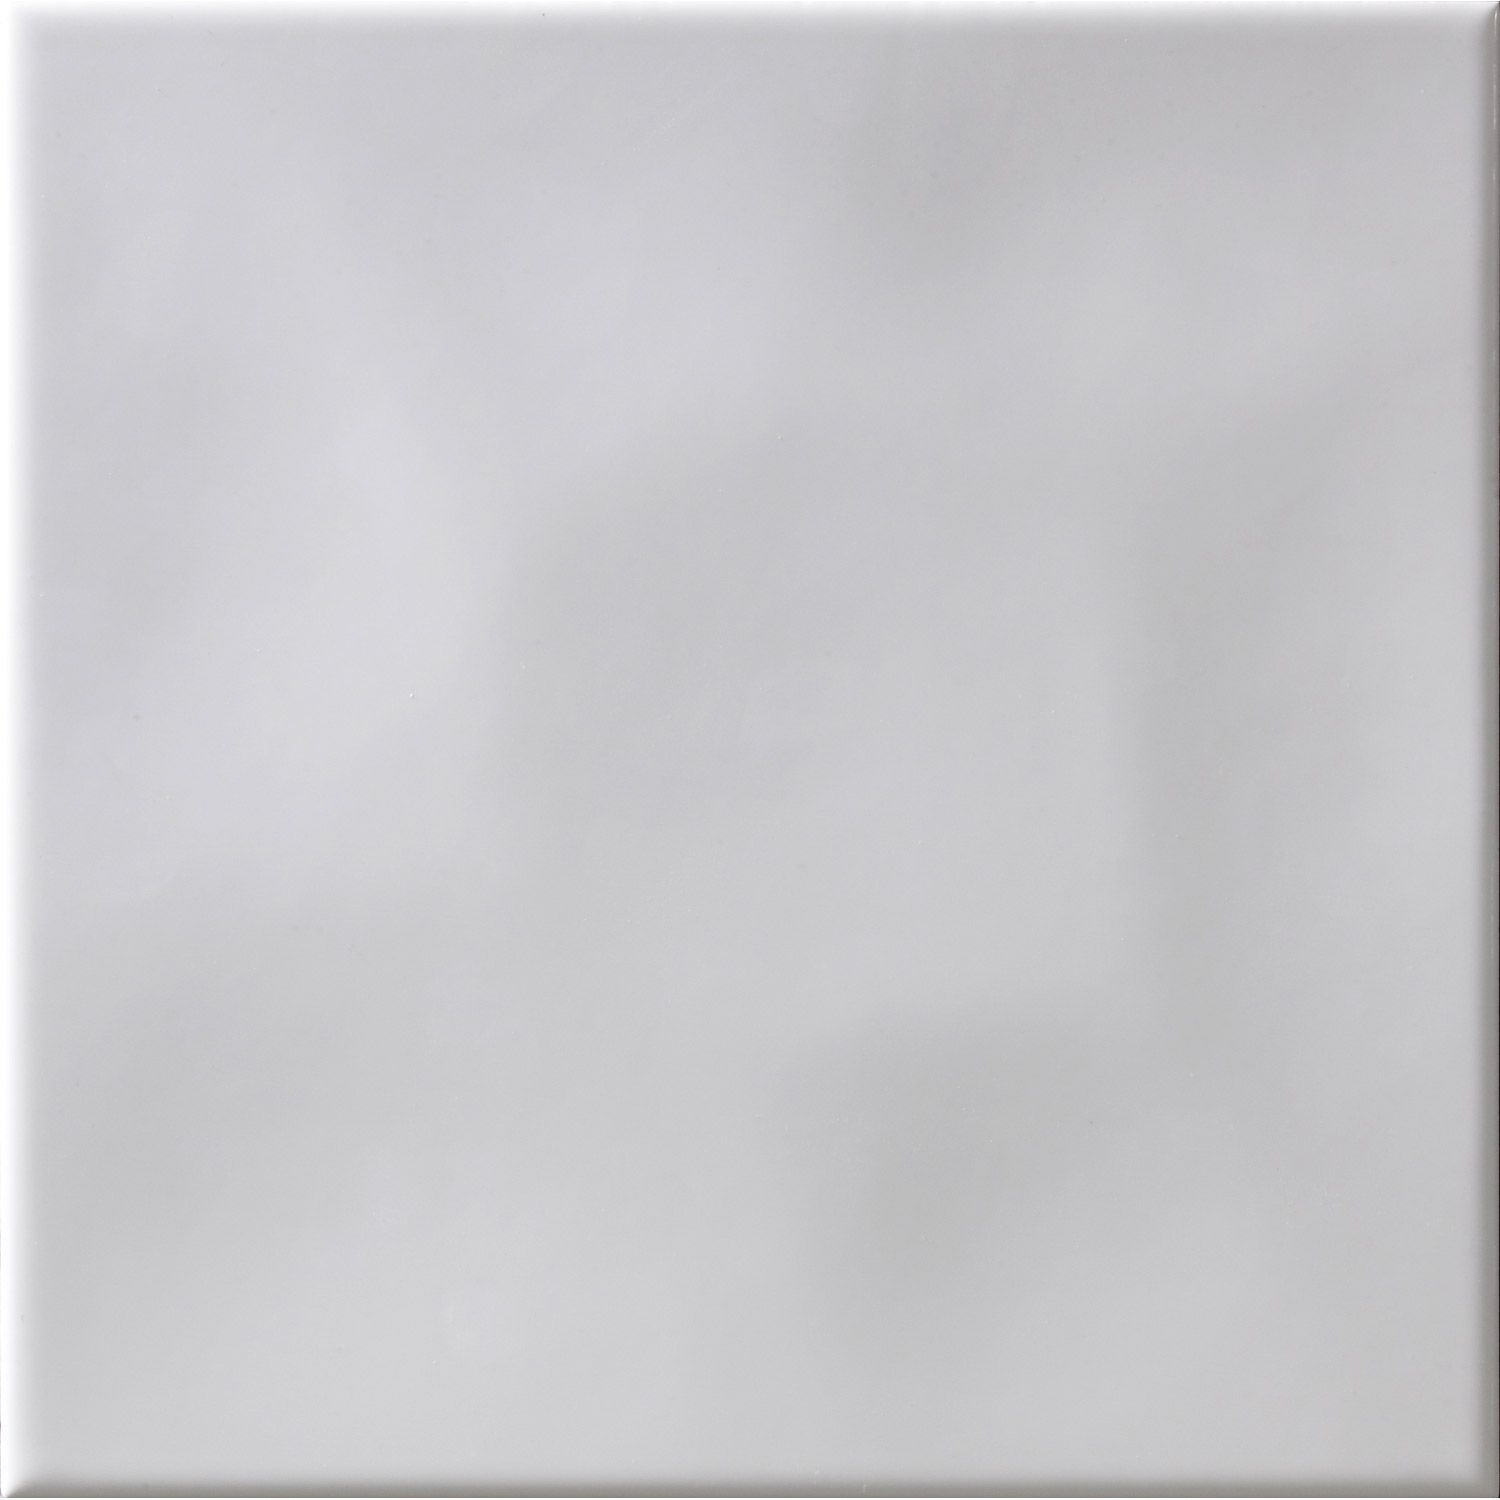 Carrelage mural bossel en fa ence blanc brillant 20 x for Carrelage blanc brillant